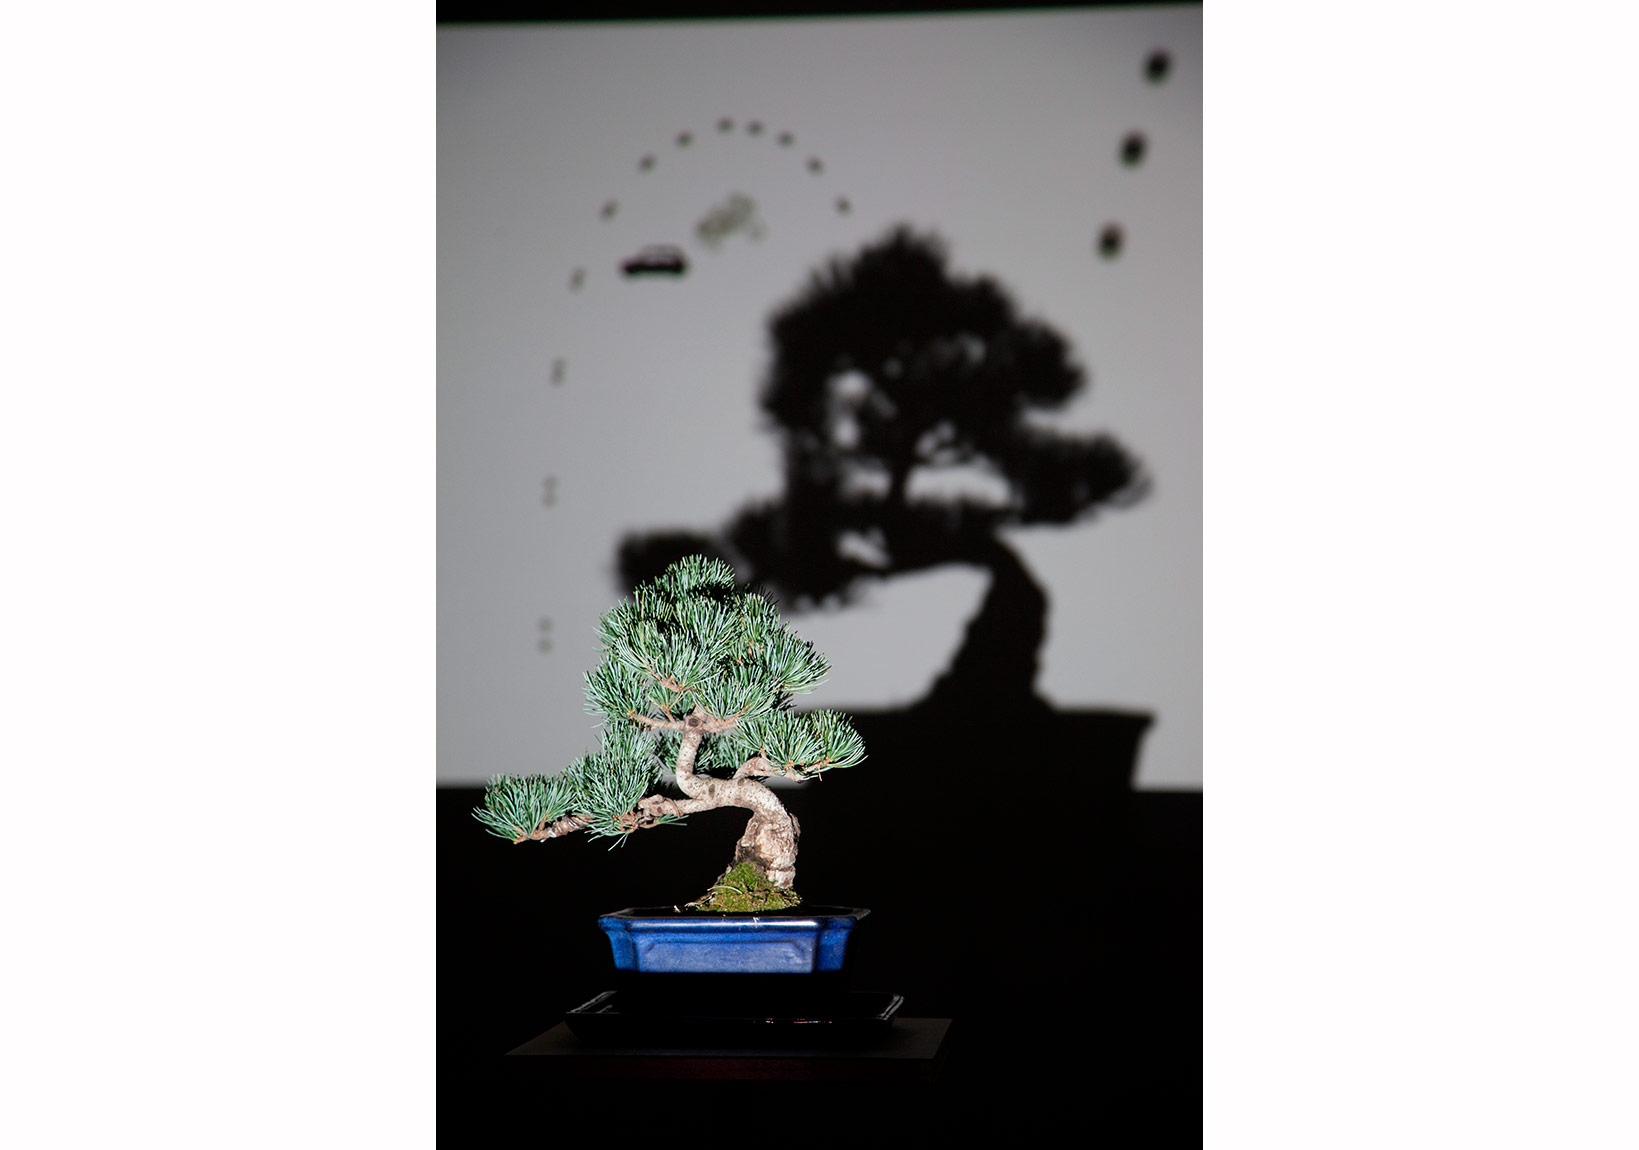 Bonsai 2014, video enstelasyon